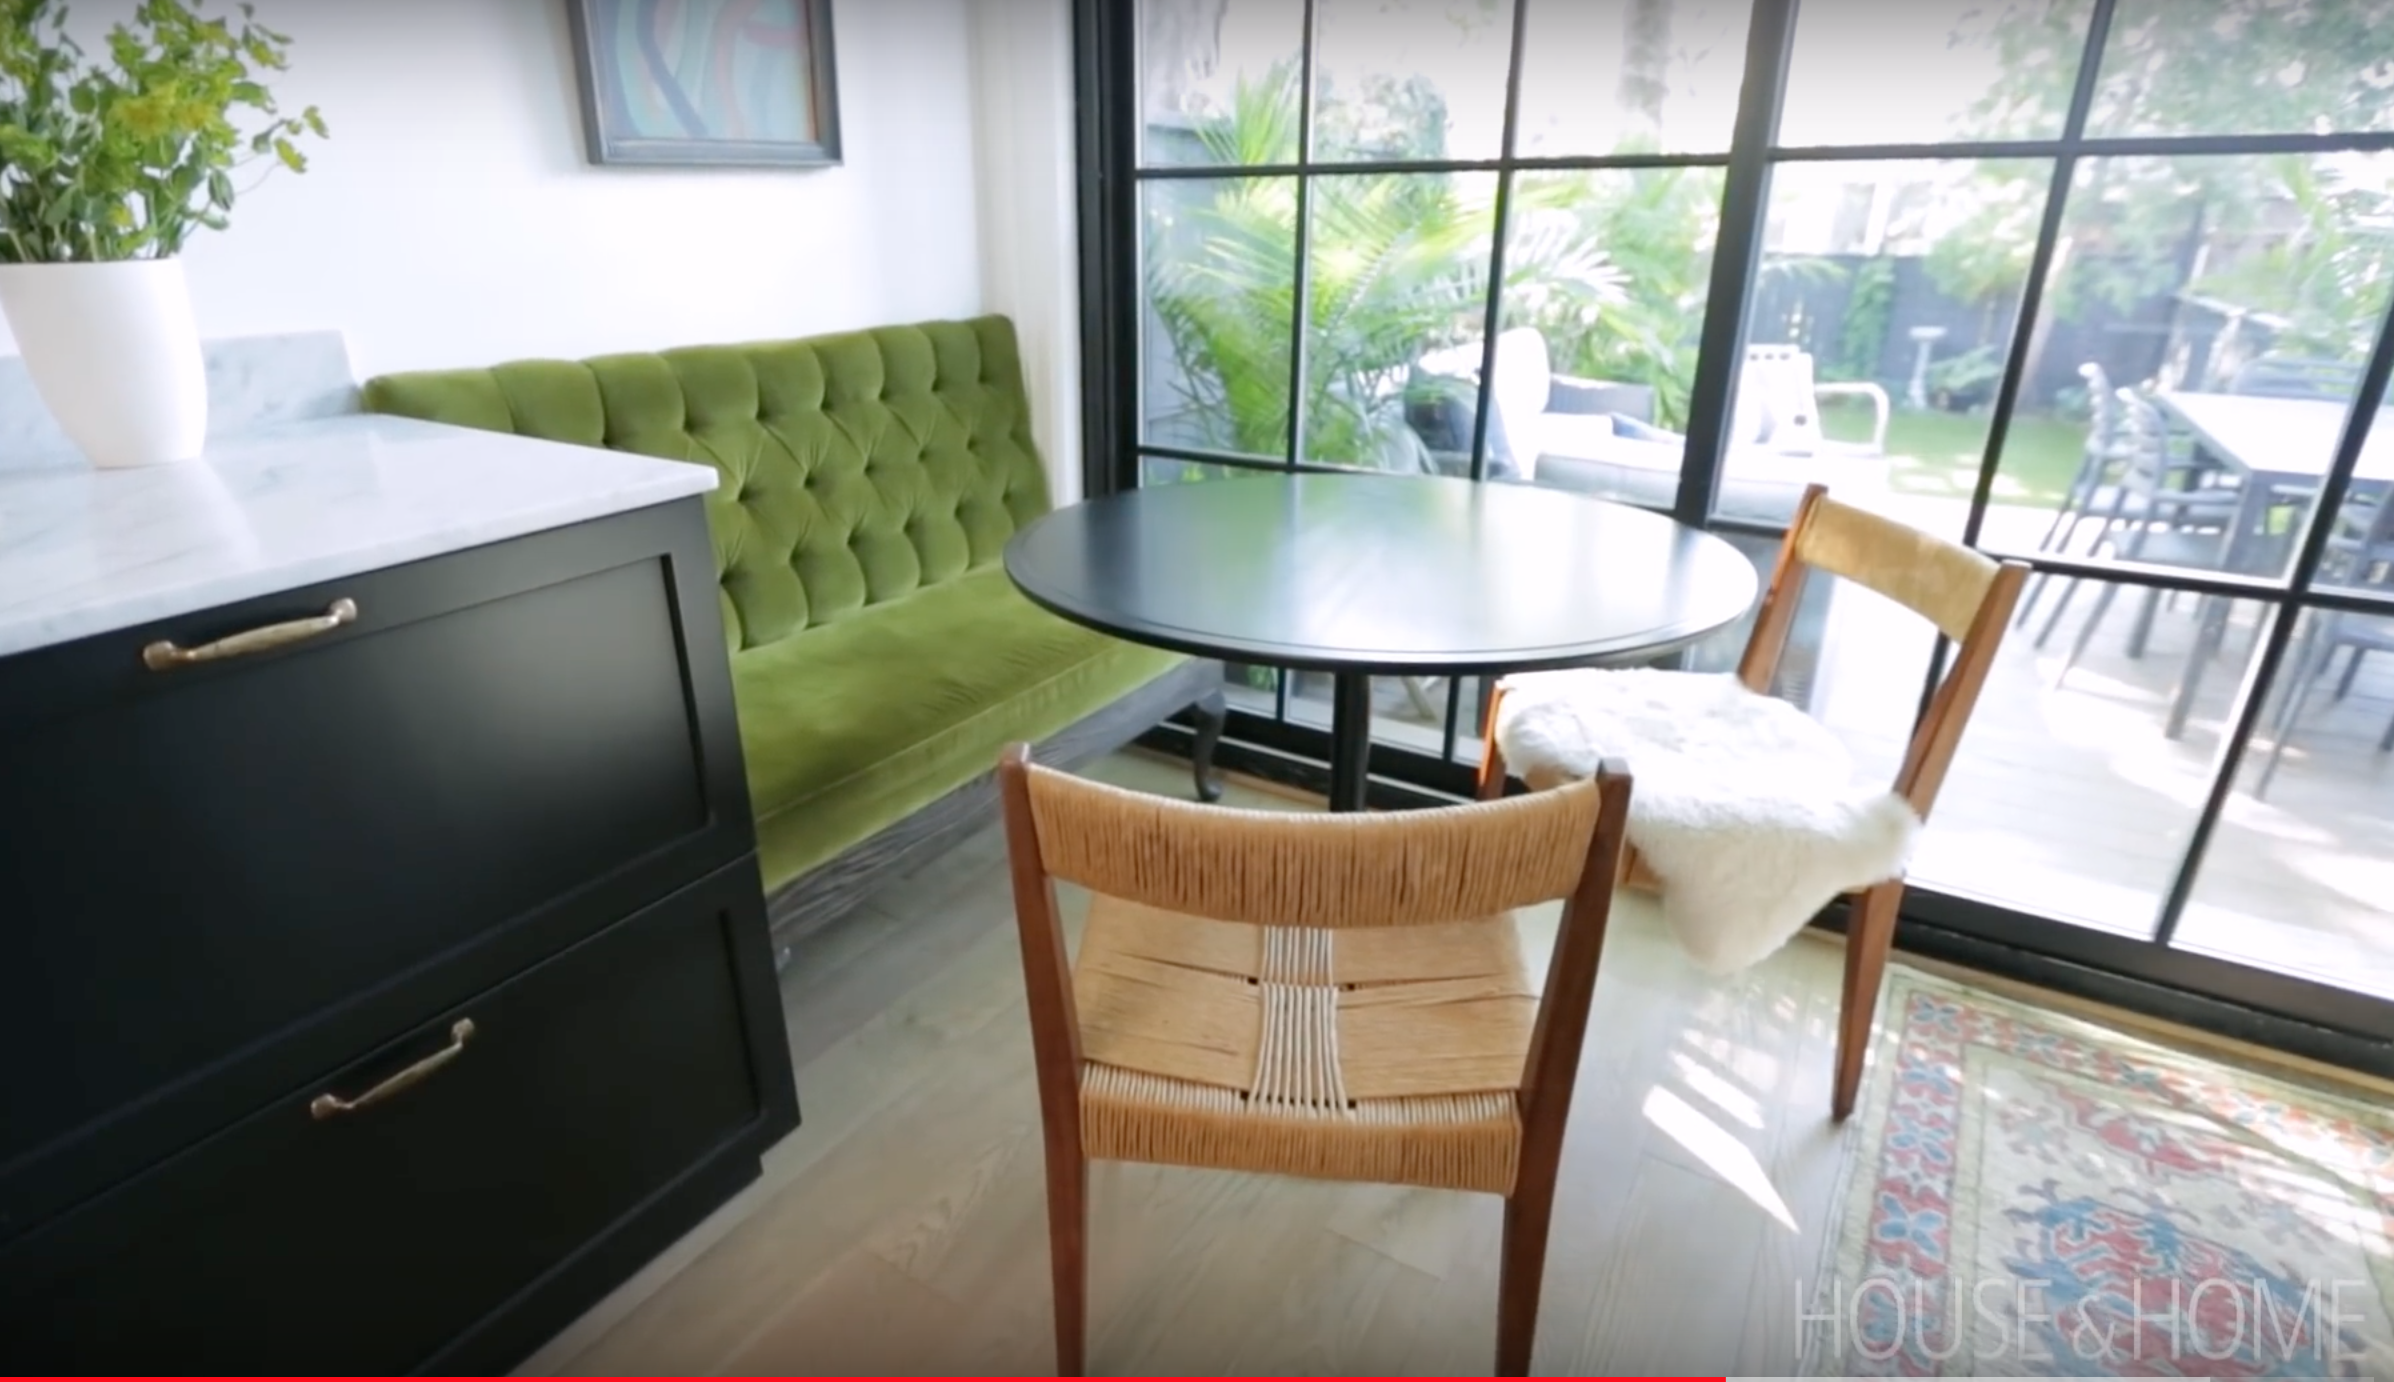 Joel Bray Victorian Row House From House And Home Uploaded To Youtube Mar 2018 Note Banquette With Queen Ann Legs Home House Simple Furniture